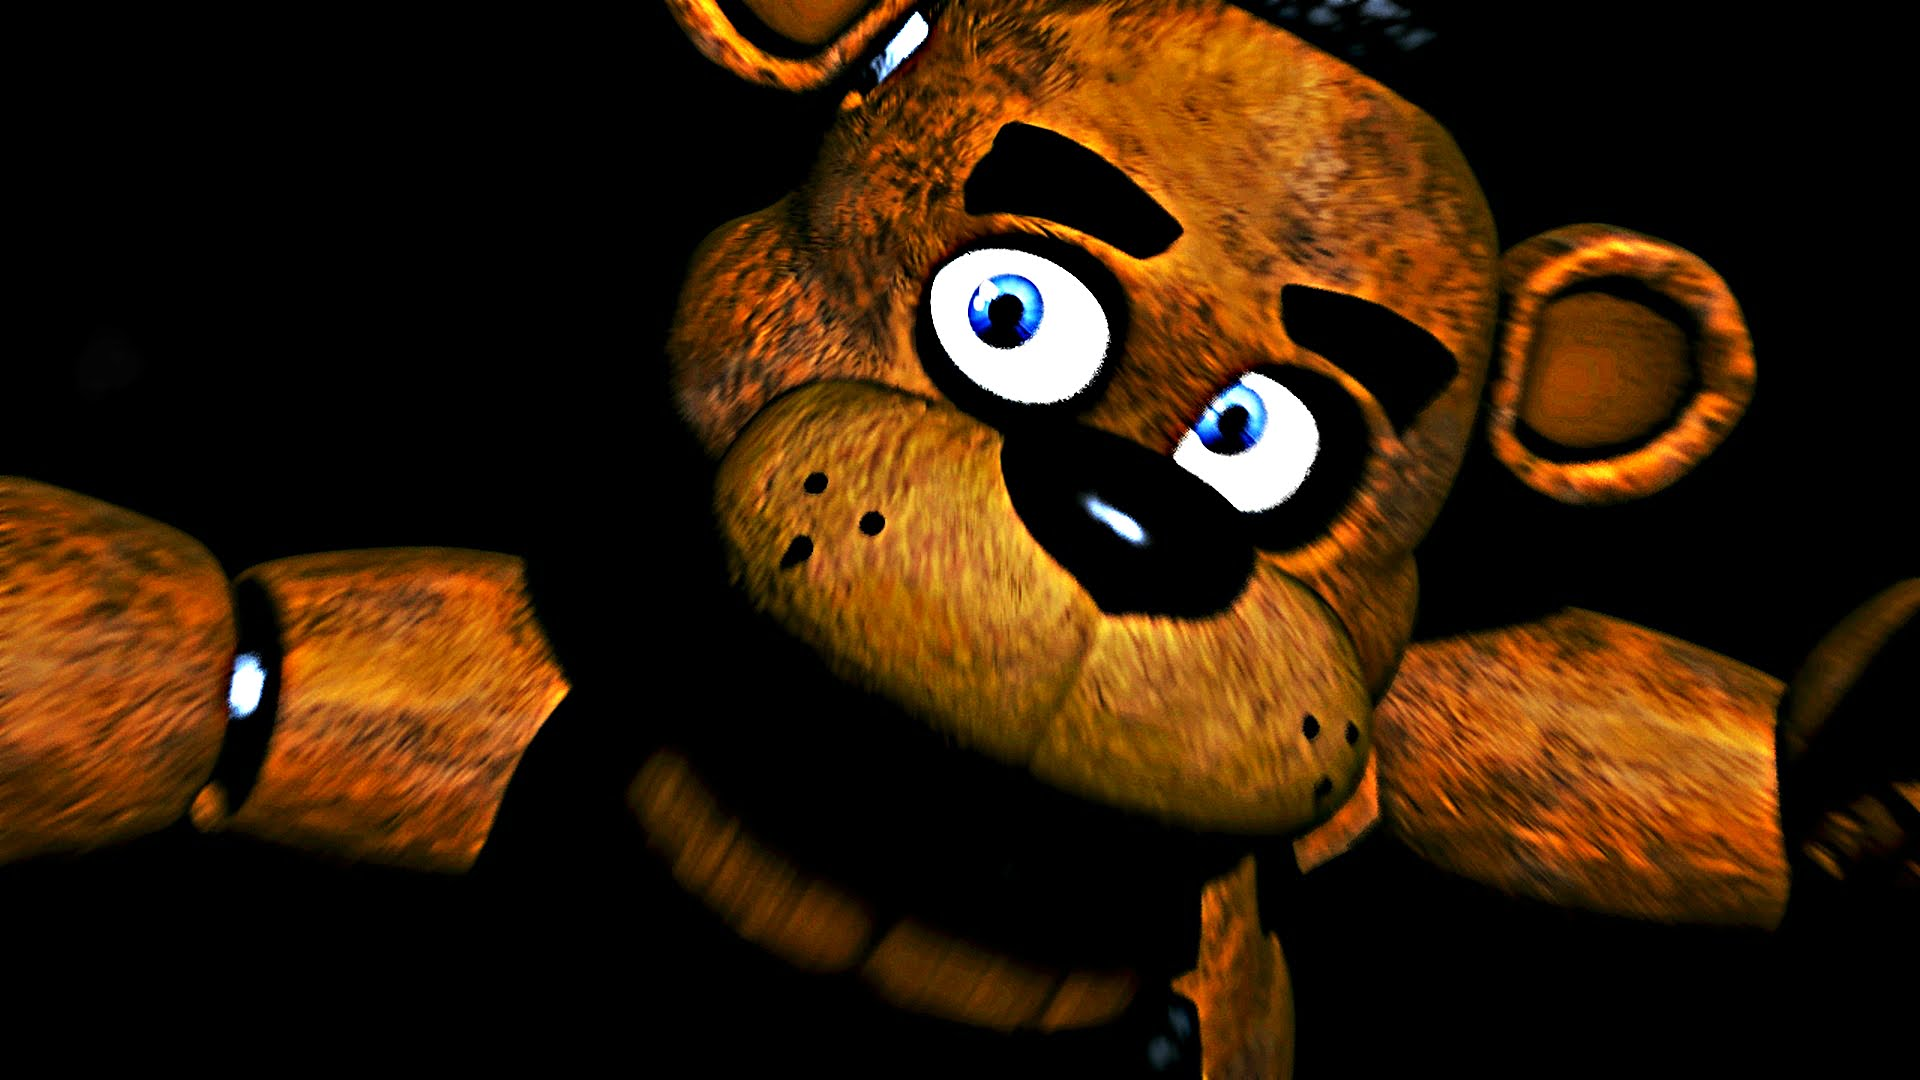 Five Nights at Freddy's creator gets a subpoena to find out who ripped off his game